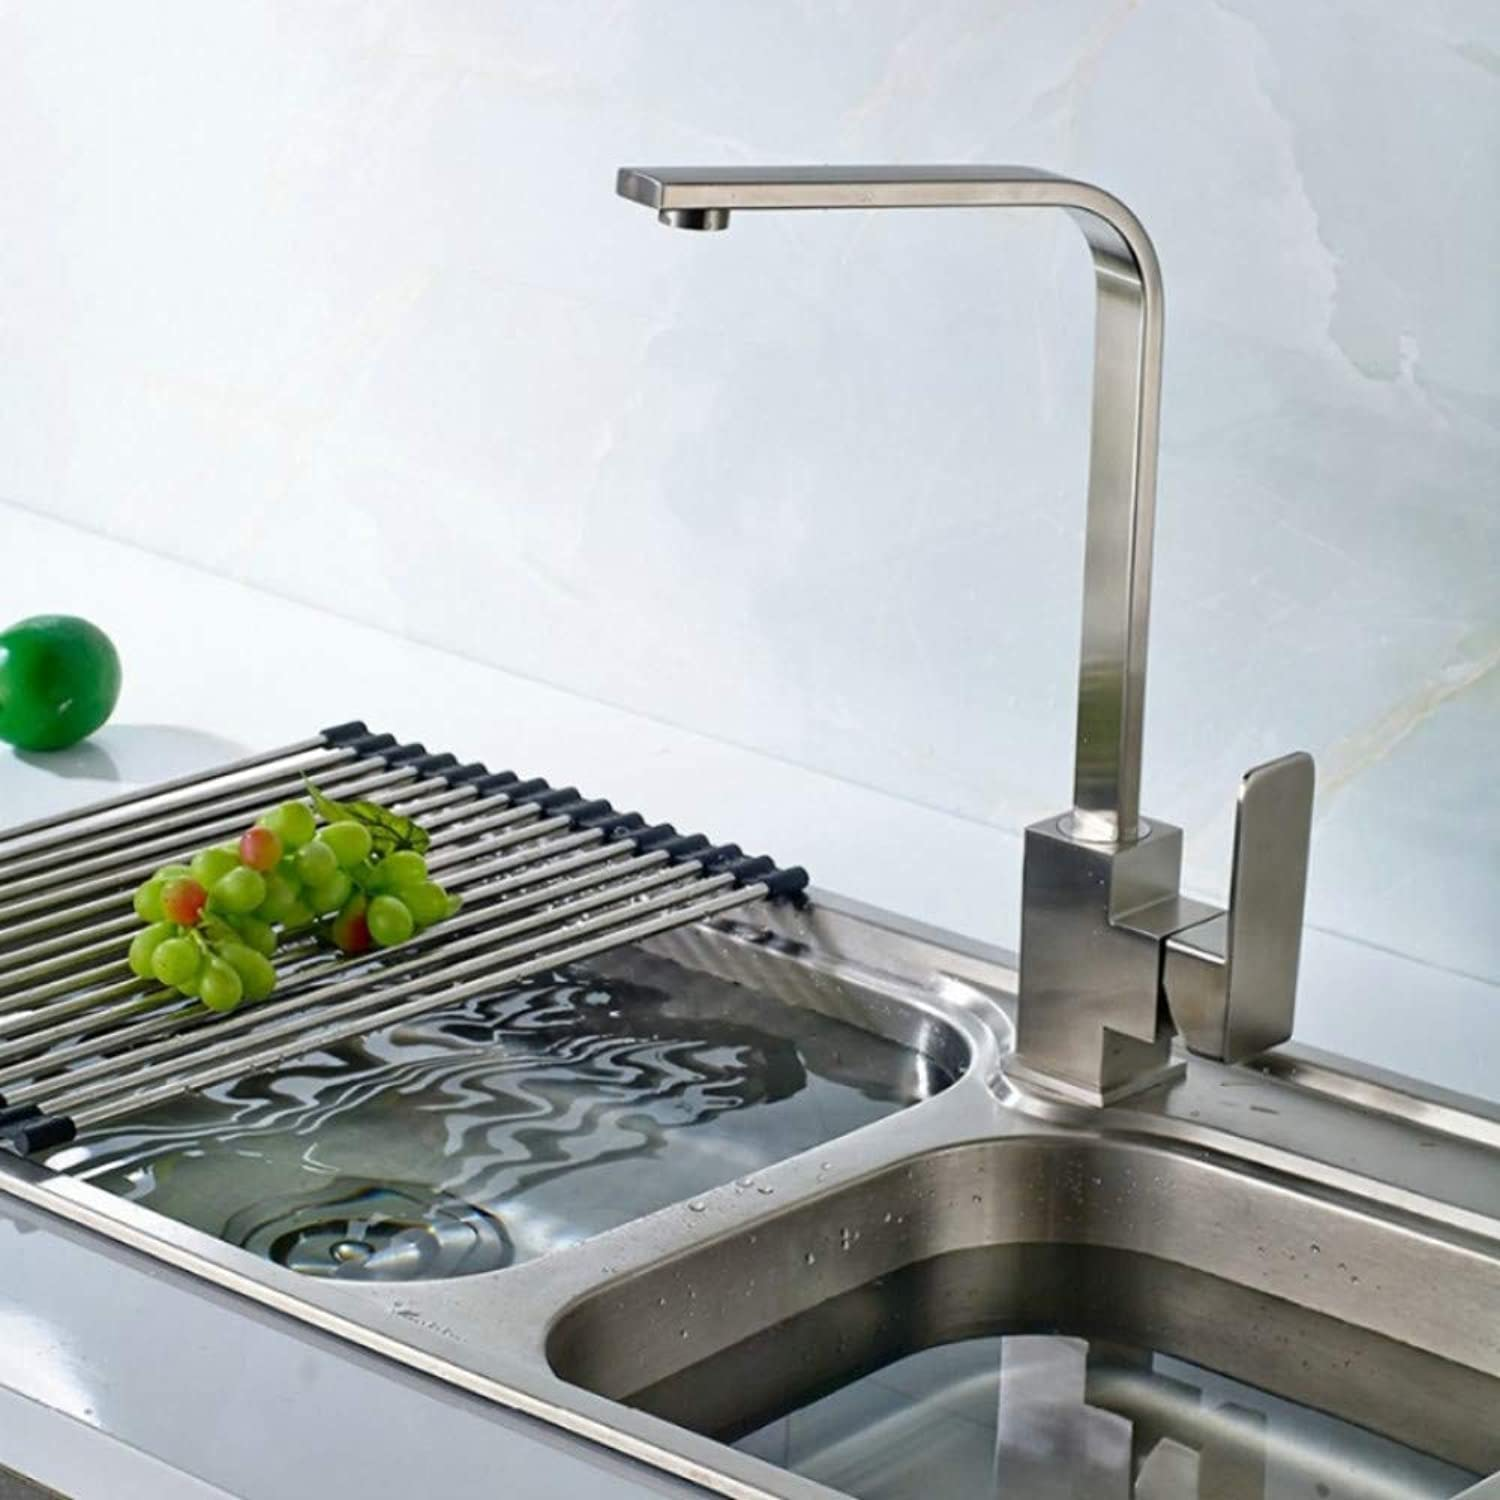 Lddpl Kitchen Faucet 304 Stainless Steel Kitchen Plate redatable Tap Kitchen Cold and Hot Deck Mounted